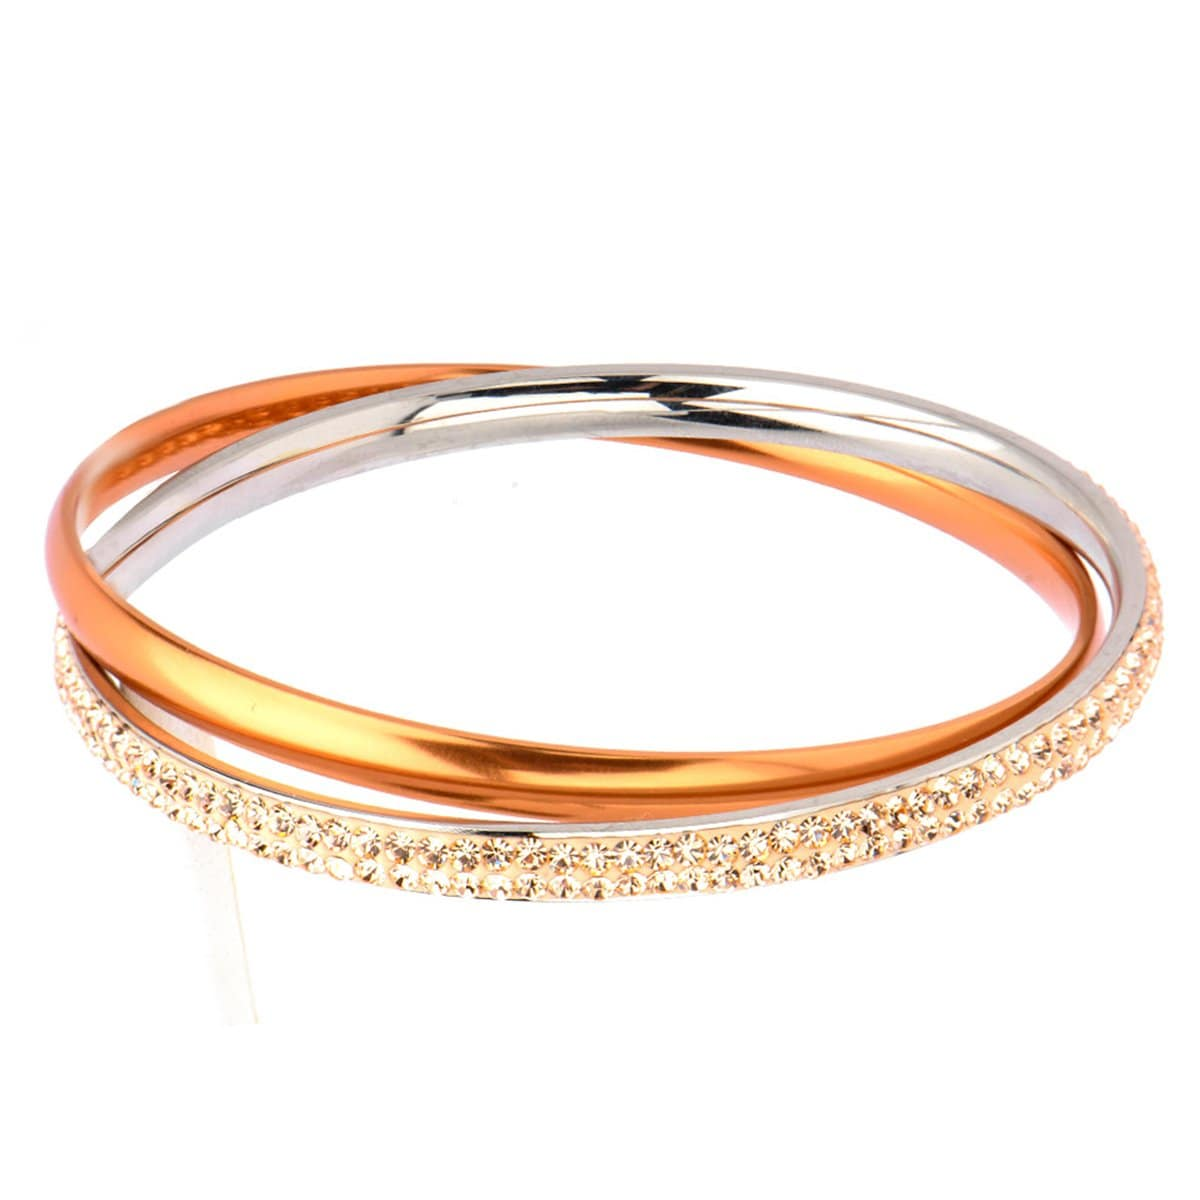 Rust & Silver Stainless Steel with Yellow Crystal Double Bangle